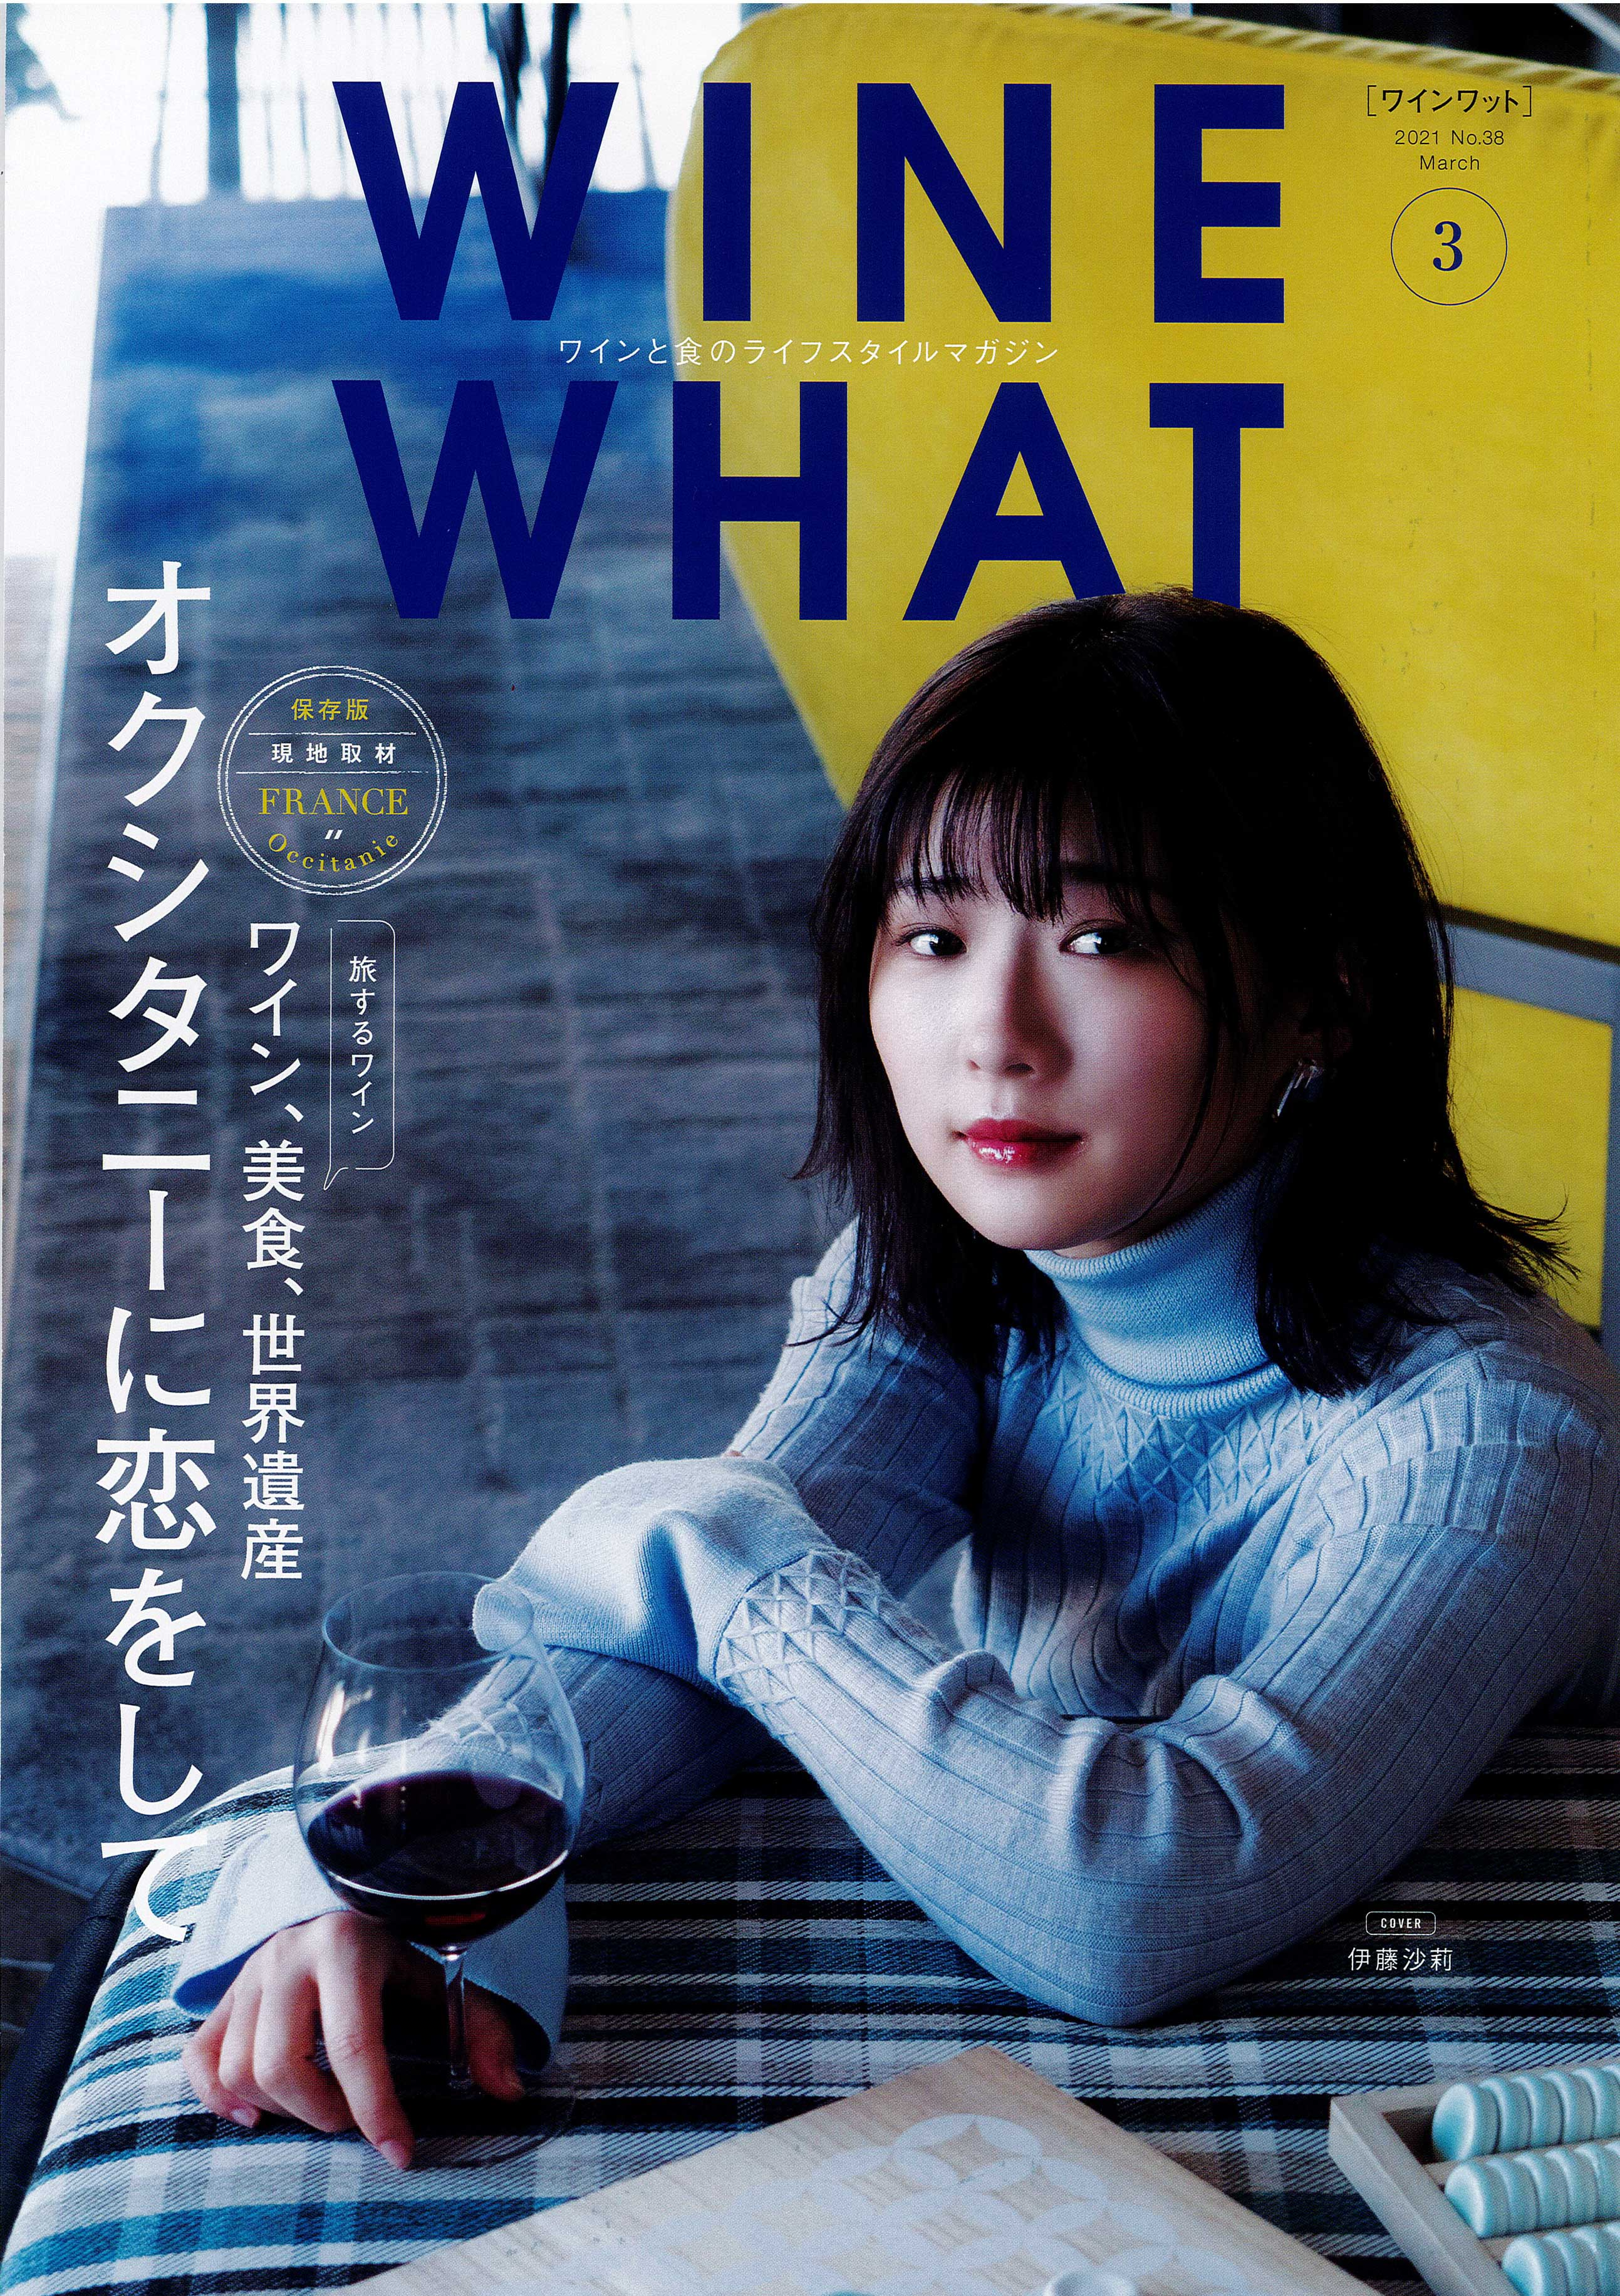 雑誌「WINE WHAT」(2021 March No.38)